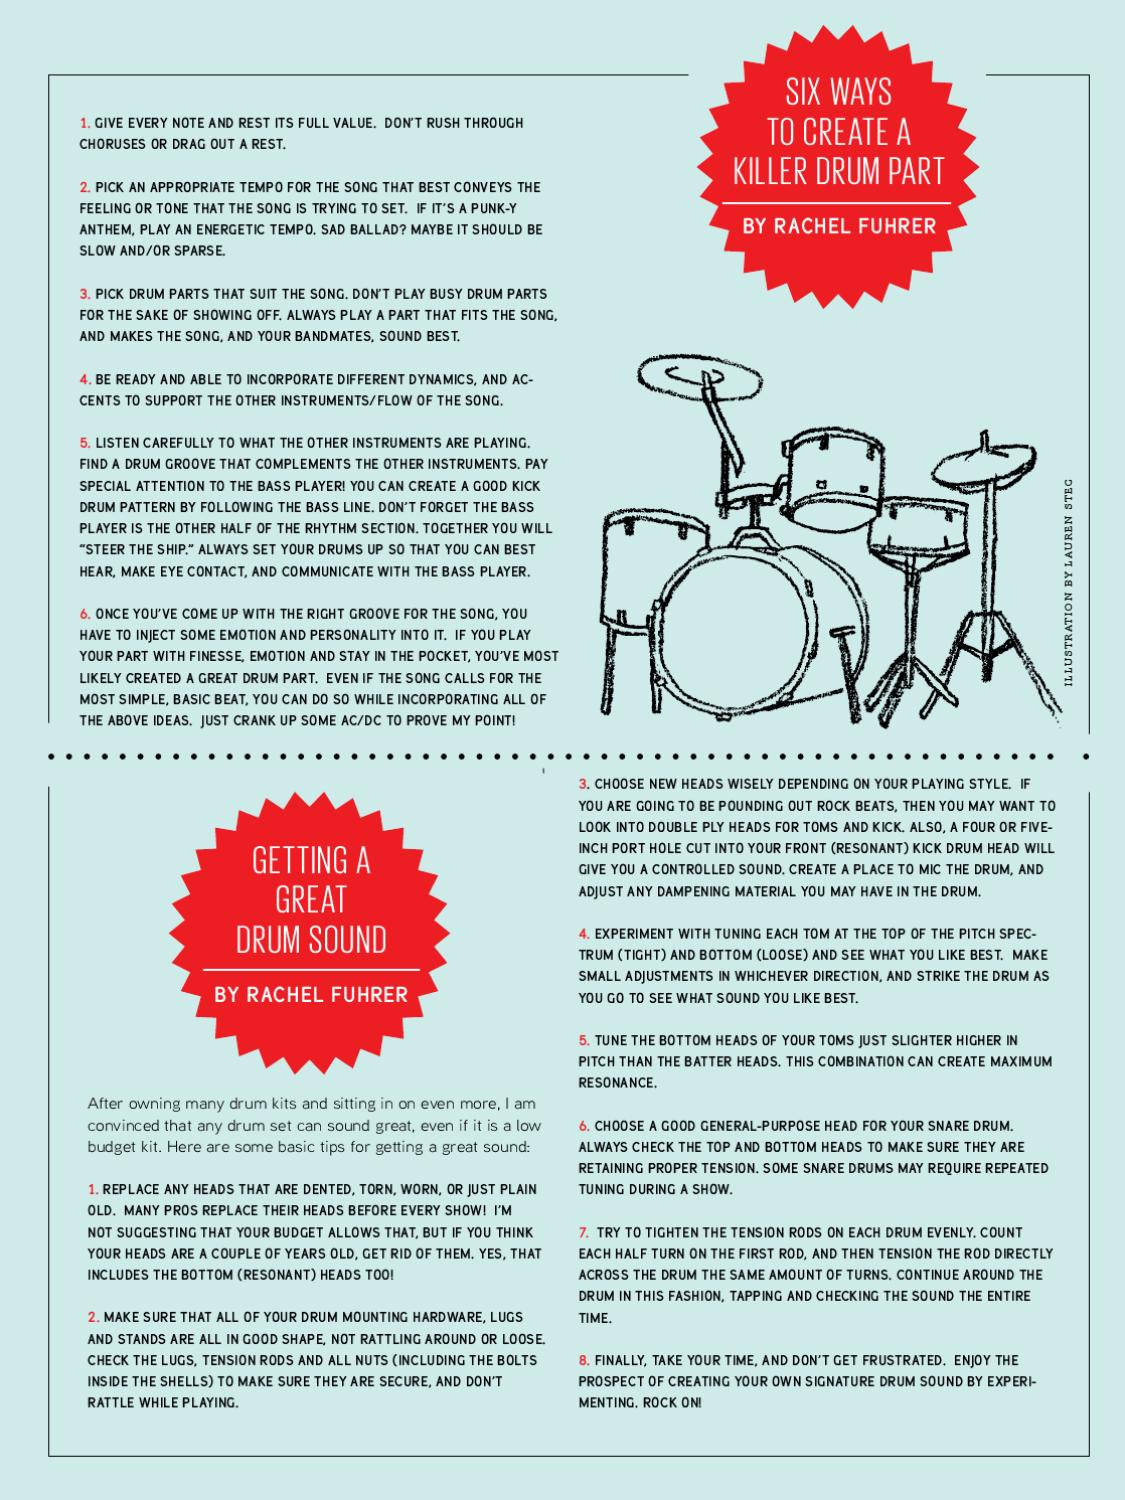 Tom Tom Magazine Issue 9: The Beat Makers Issue by Tom Tom